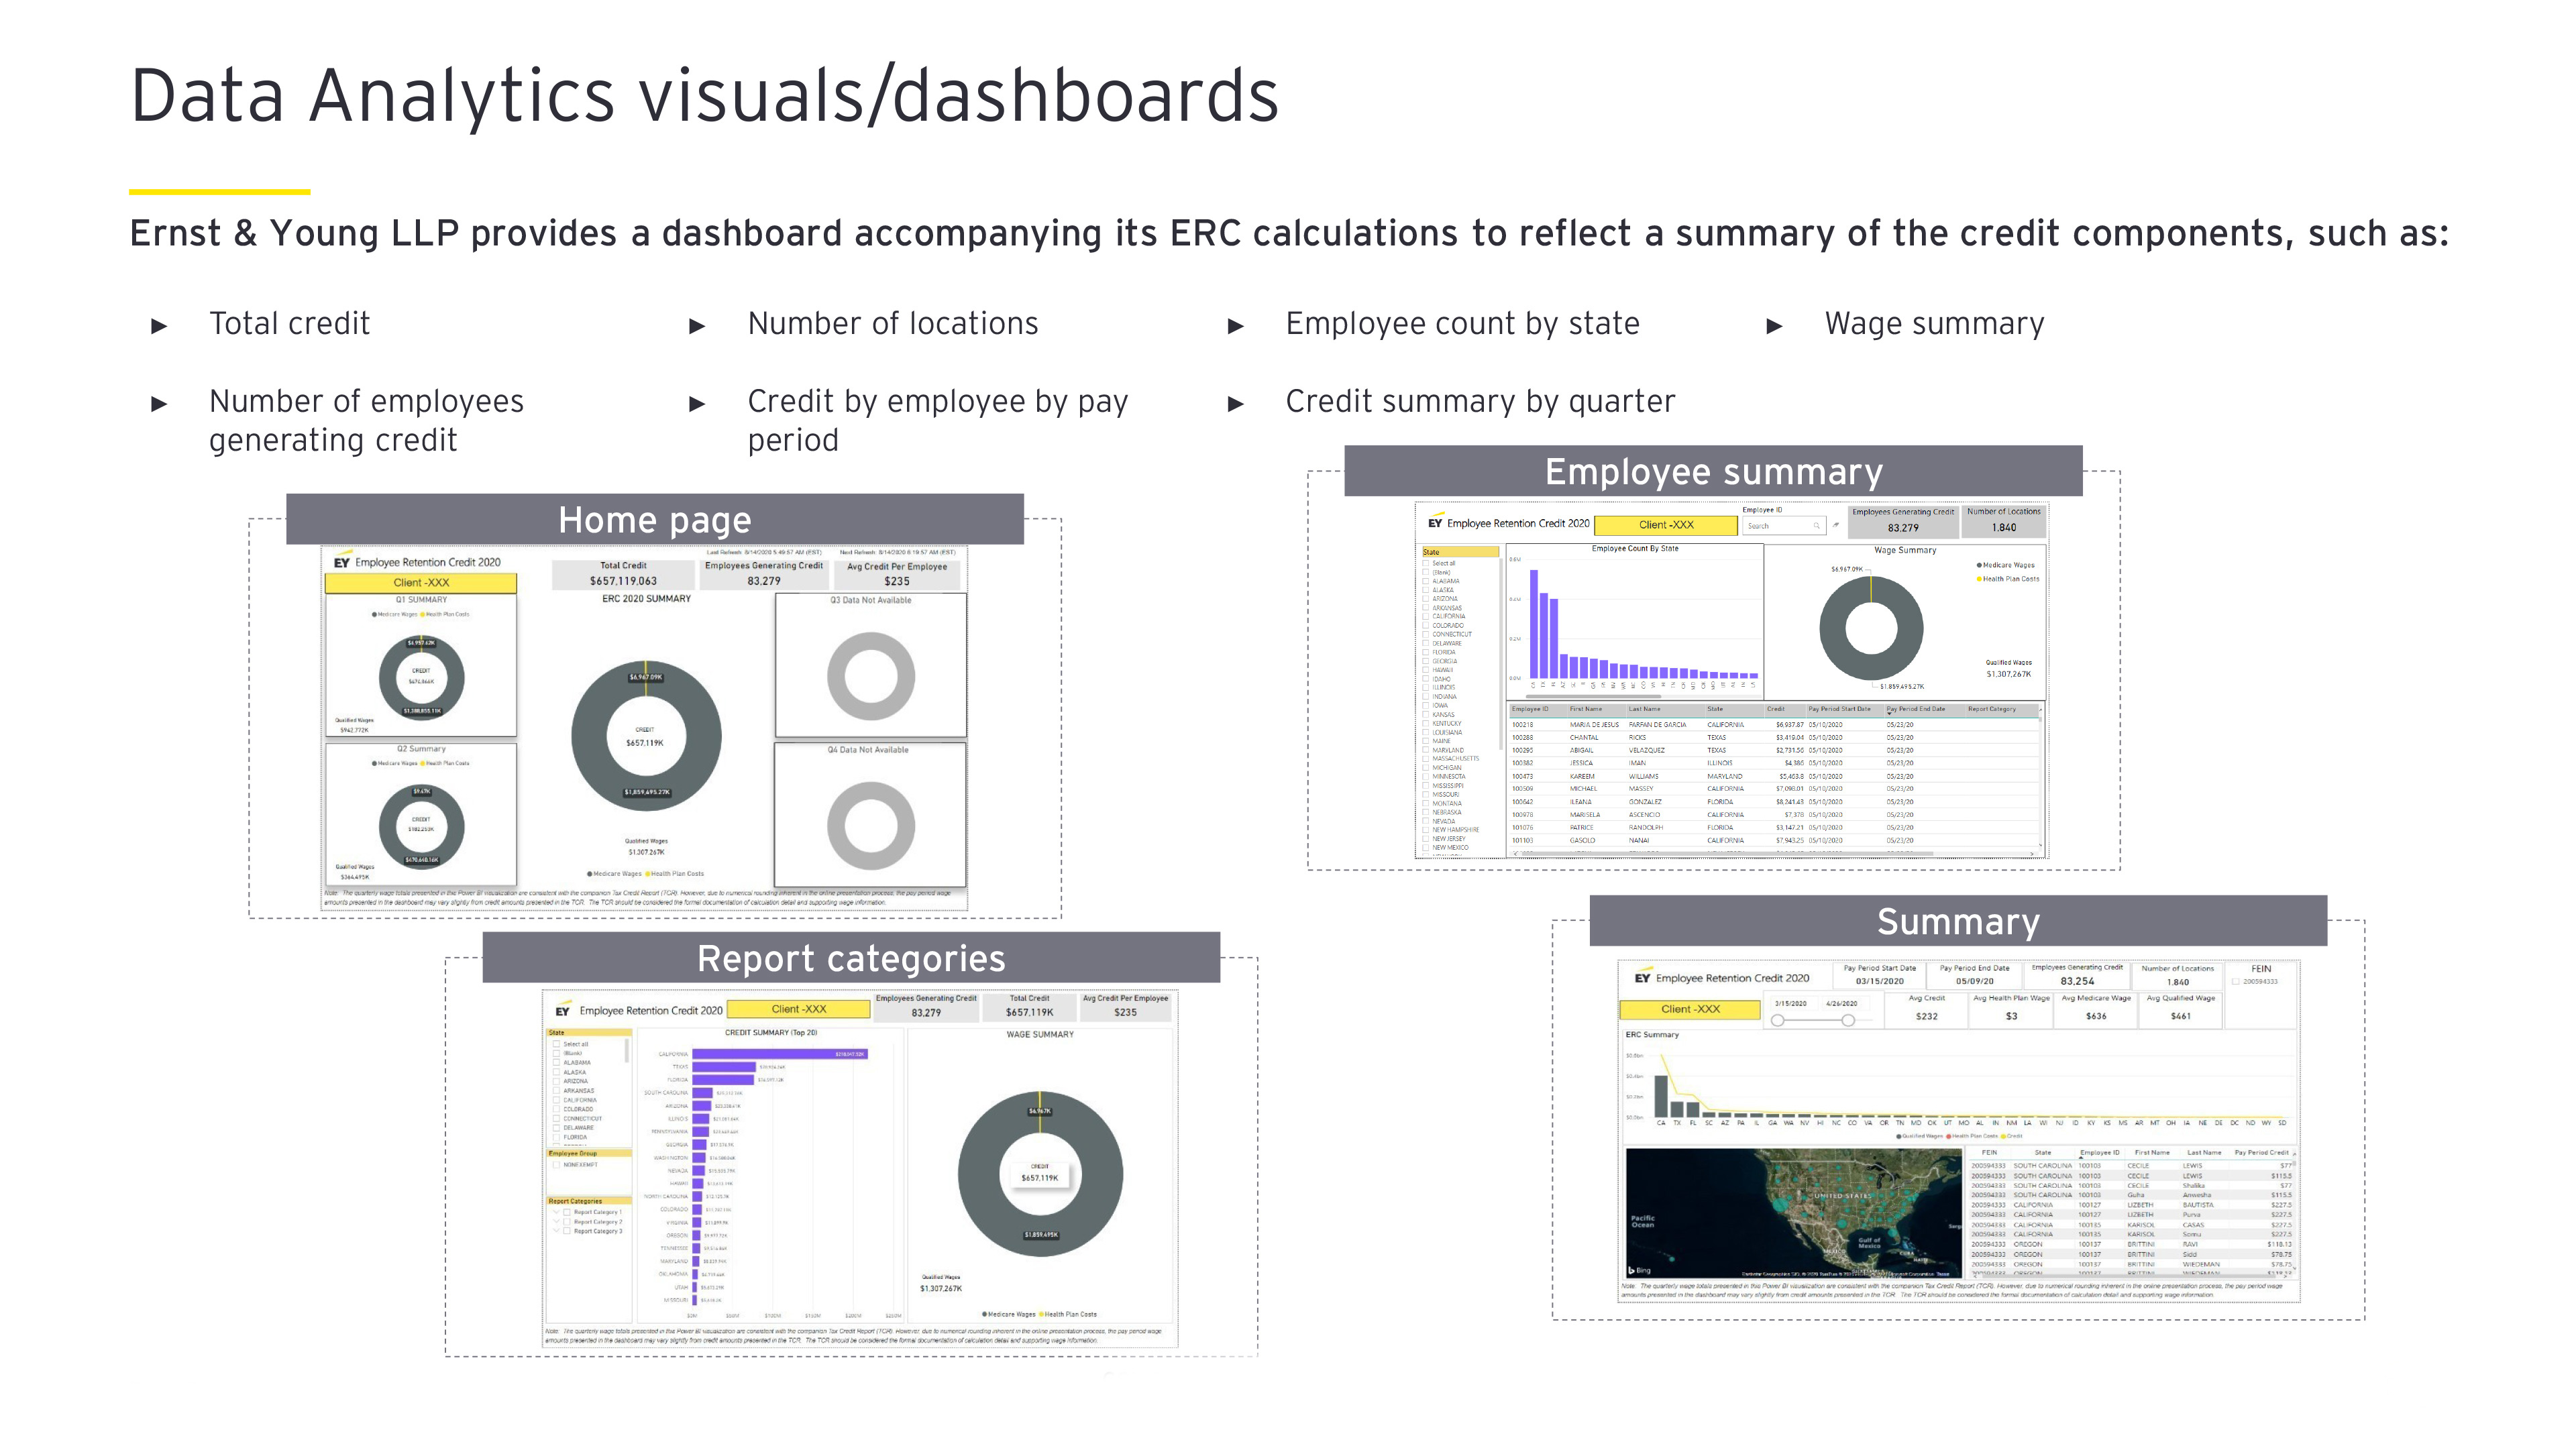 Data Analytics visuals/dashboards